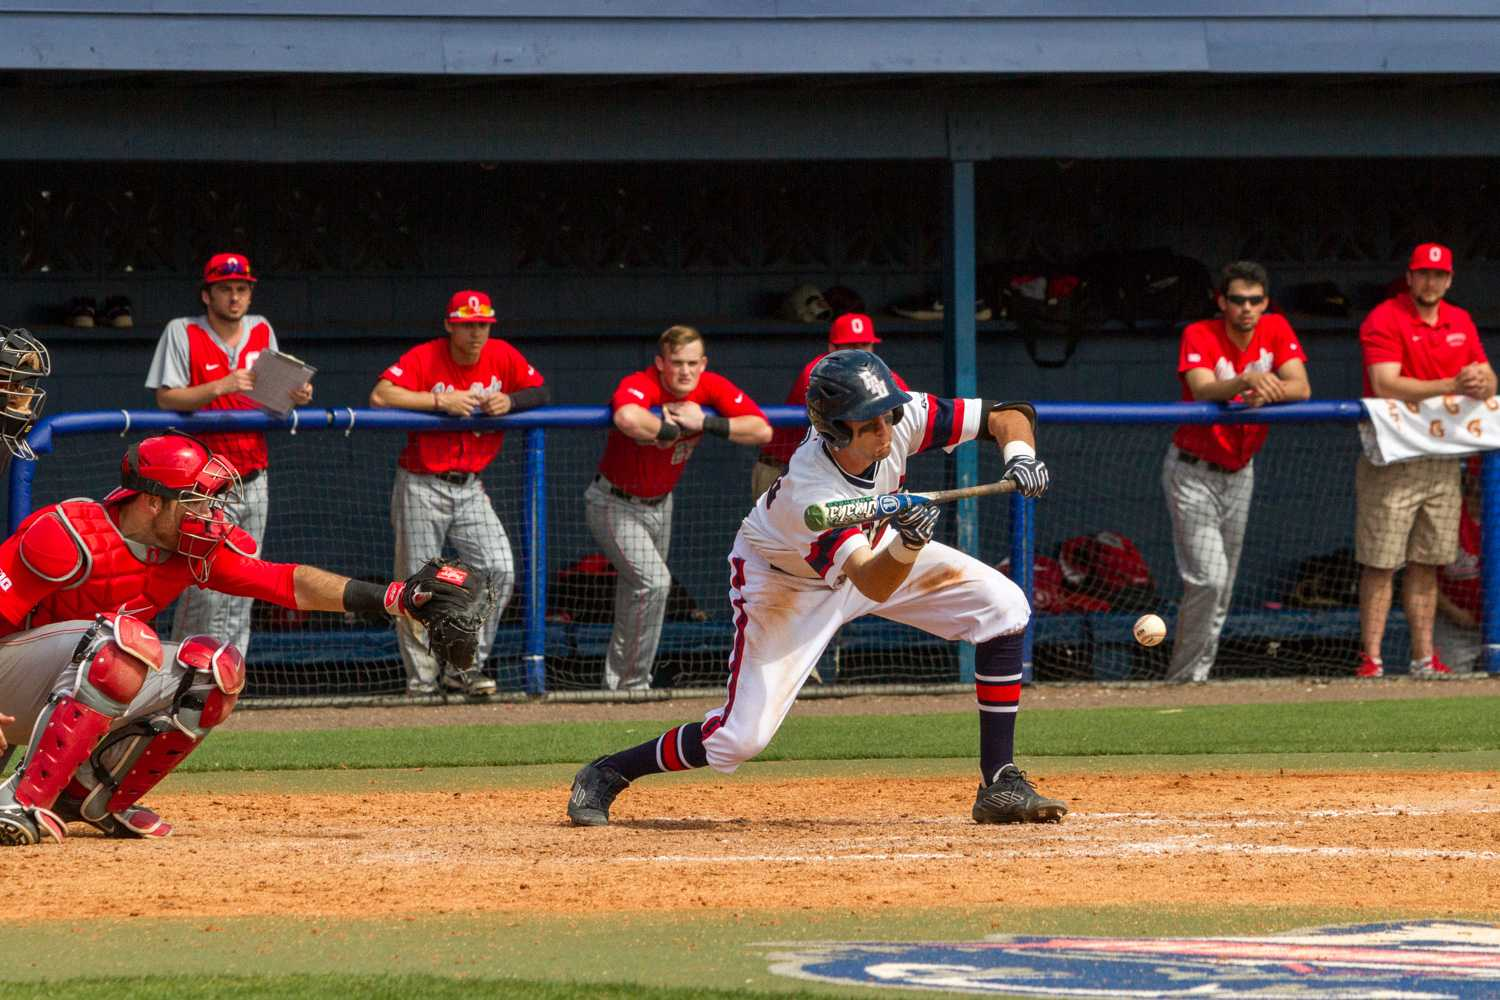 Sophomore CJ Chatham (10) squares to bunt. He had a hit in two at bats.